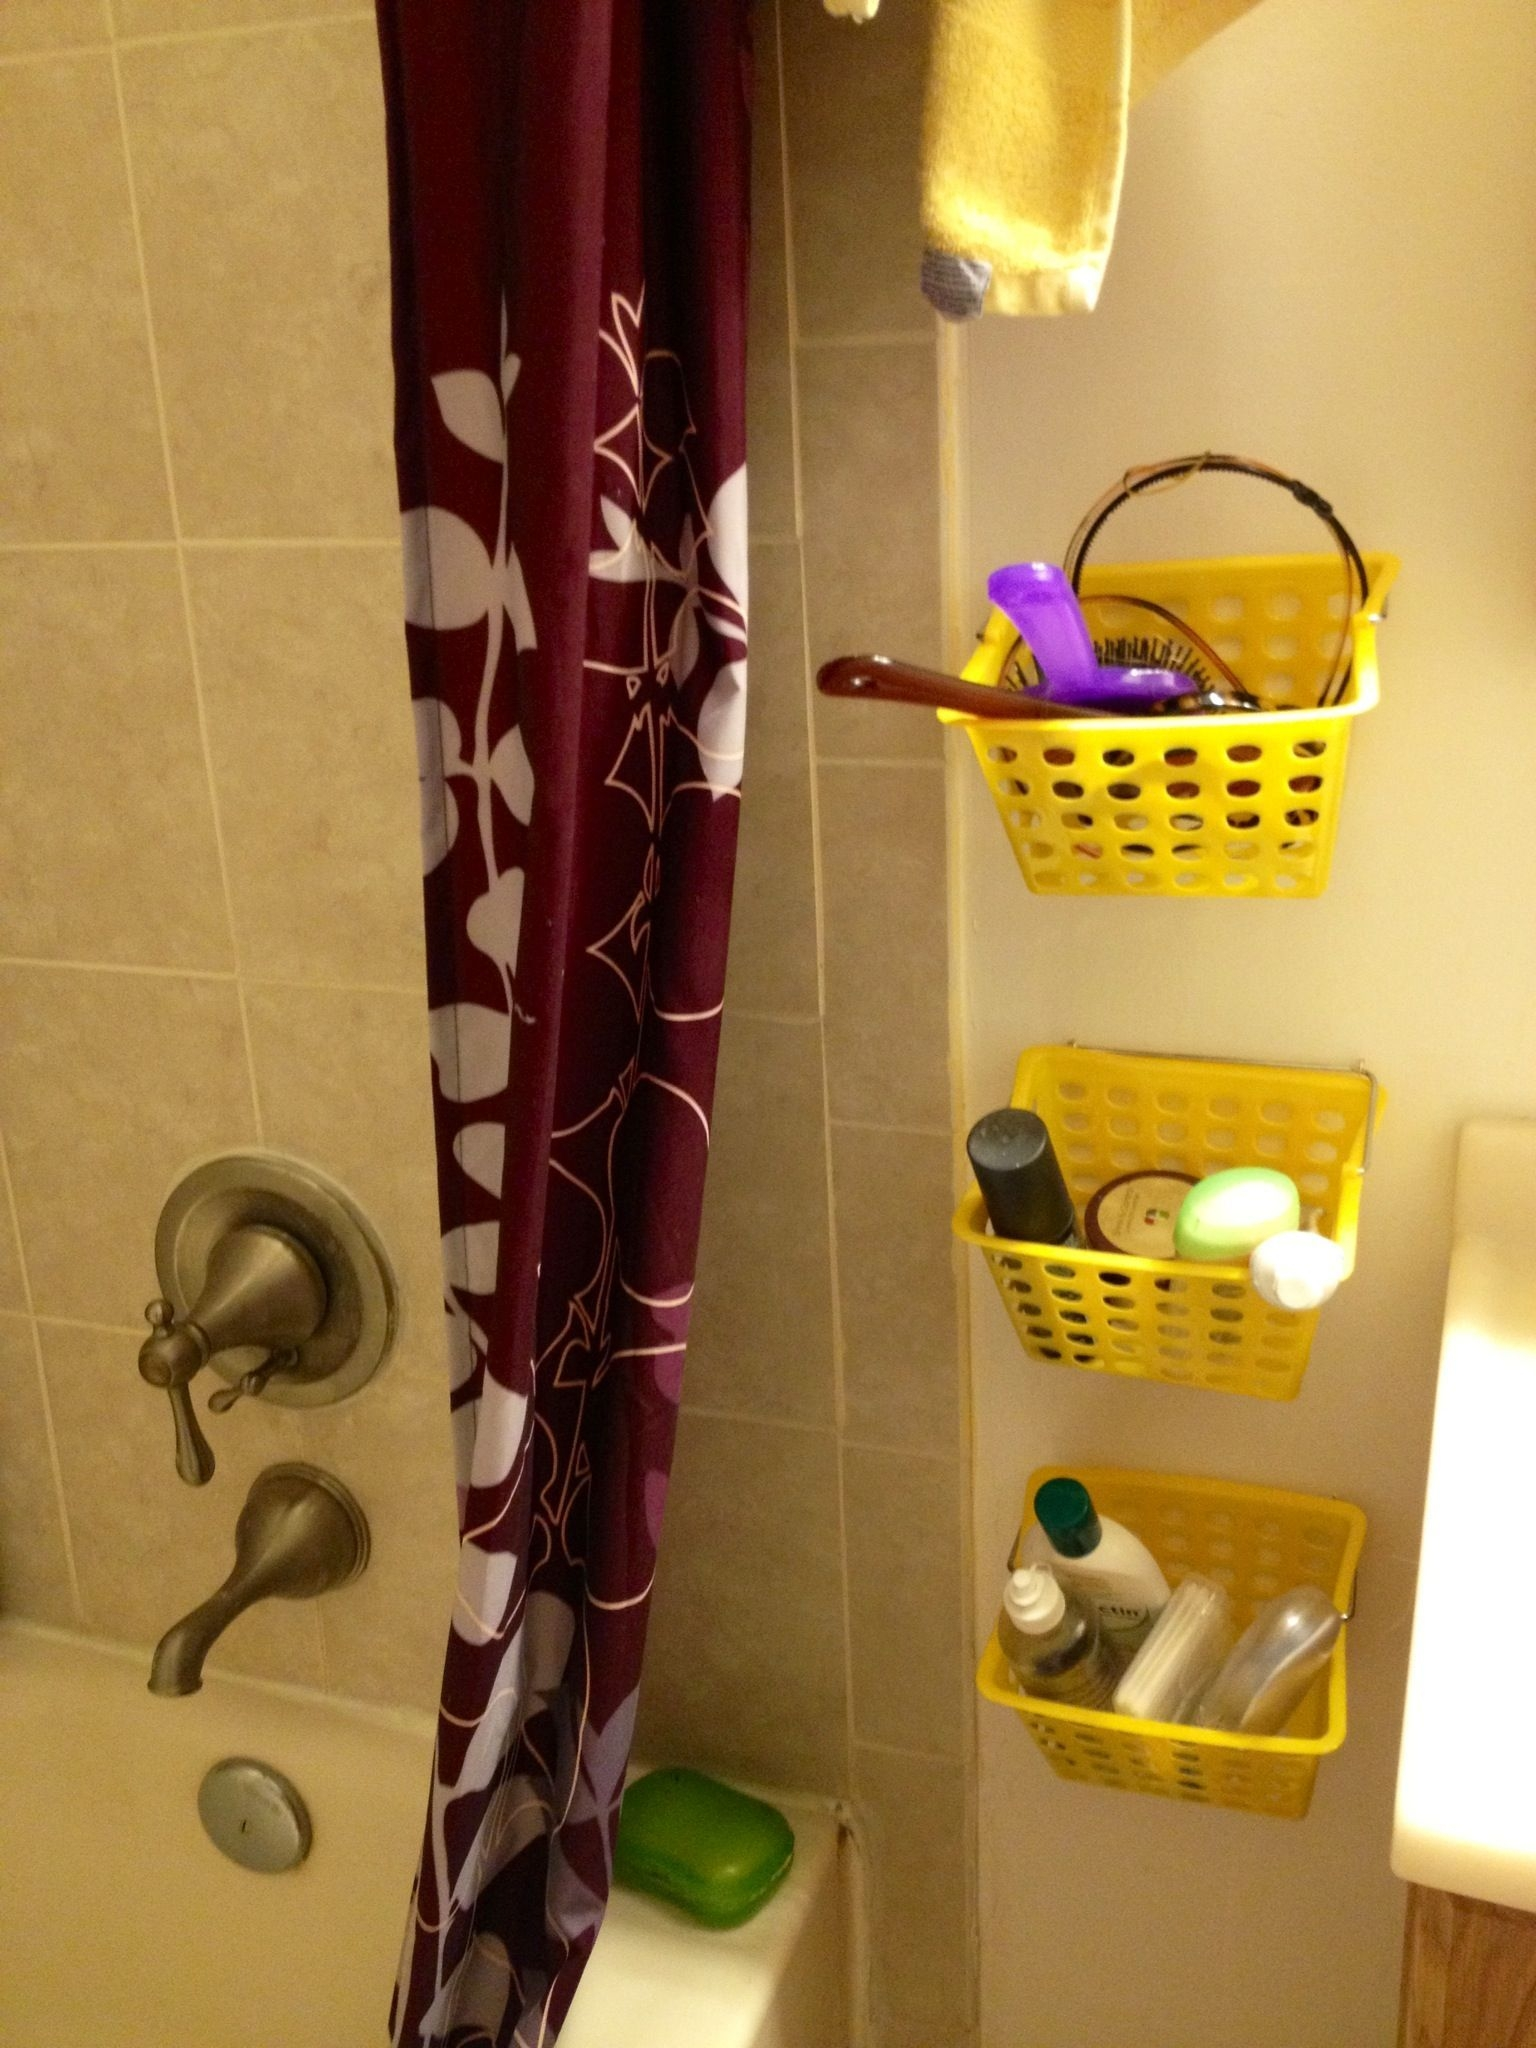 Diy Storage For Tiny Bathroom Using Dollar Store Baskets And Hooks Diy Storage  Diy Storage